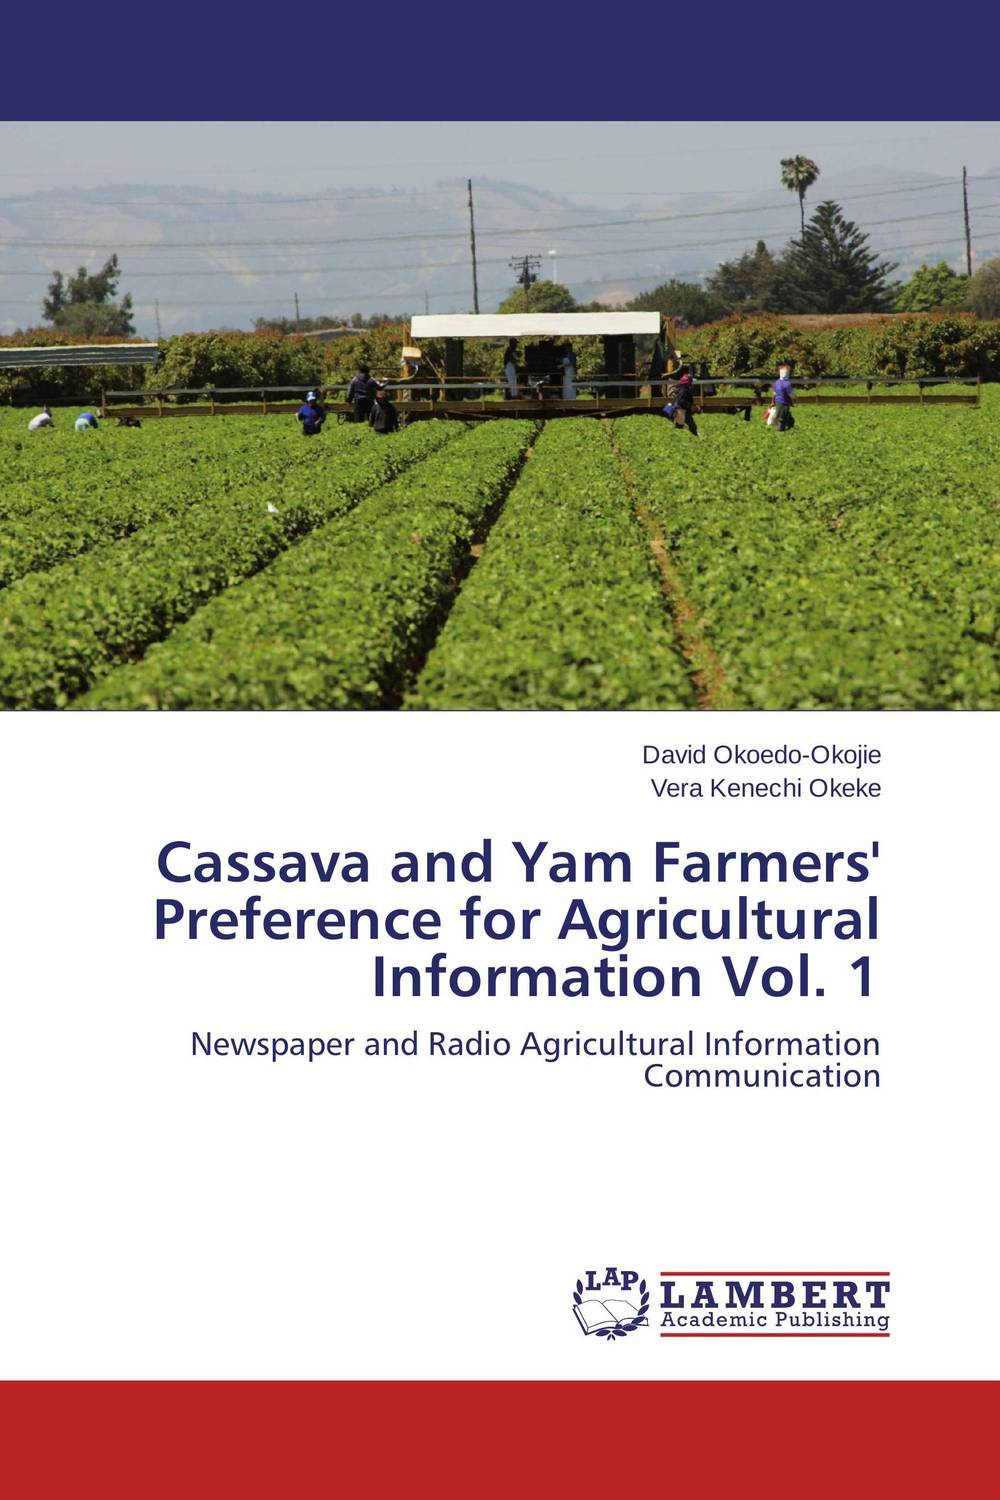 Cassava and Yam Farmers' Preference for Agricultural Information Vol. 1 farmers attitude